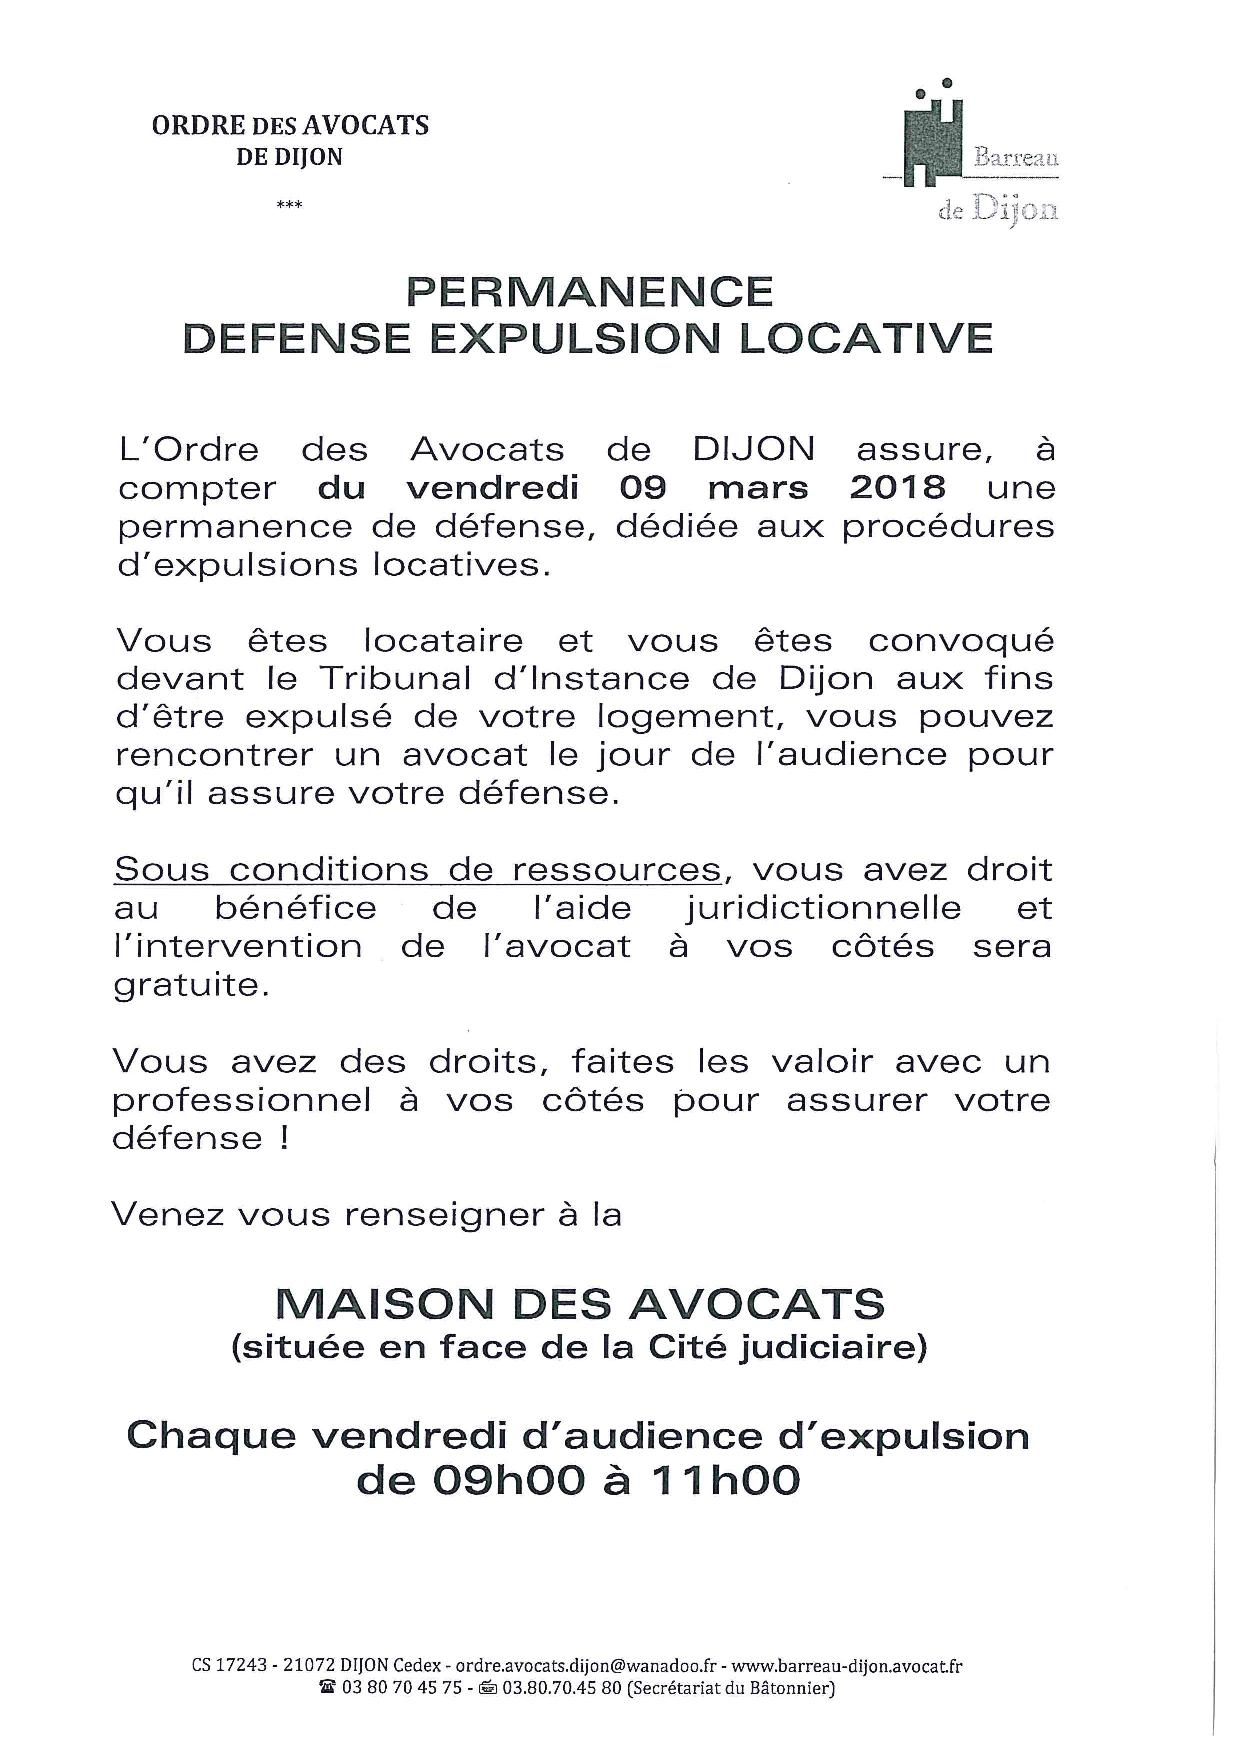 PERMANENCE DEFENSE EXPULSION LOCATIVE A COMPTER DU 9 MARS 2018